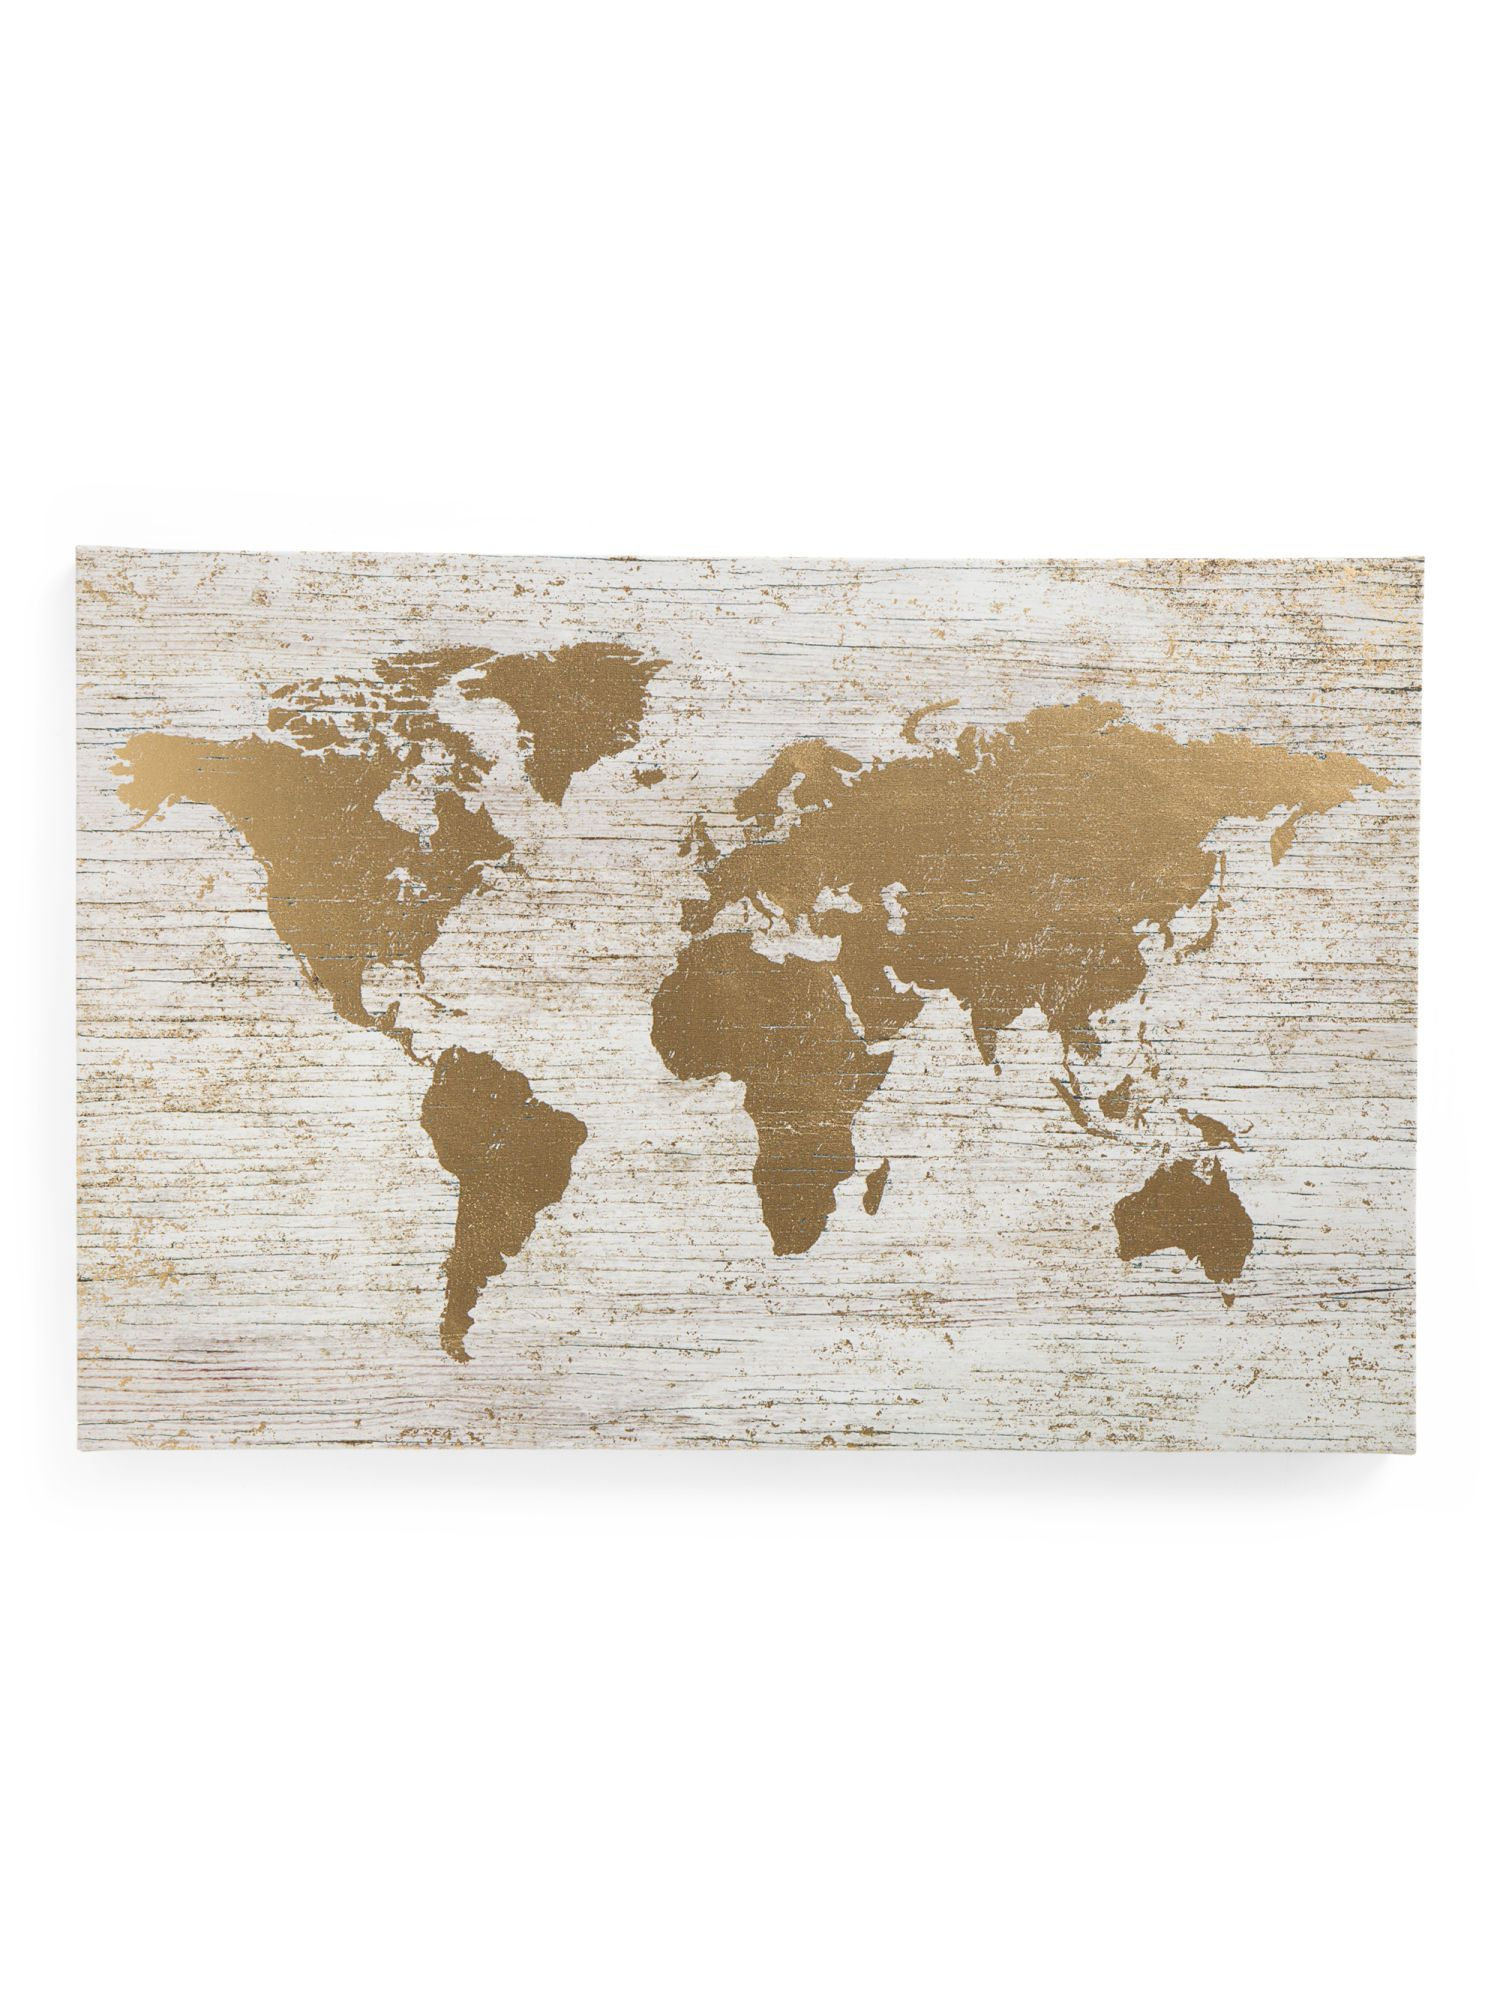 Large gold foil world map on canvas global home tjxx large gold foil world map on canvas global home tjxx gumiabroncs Image collections